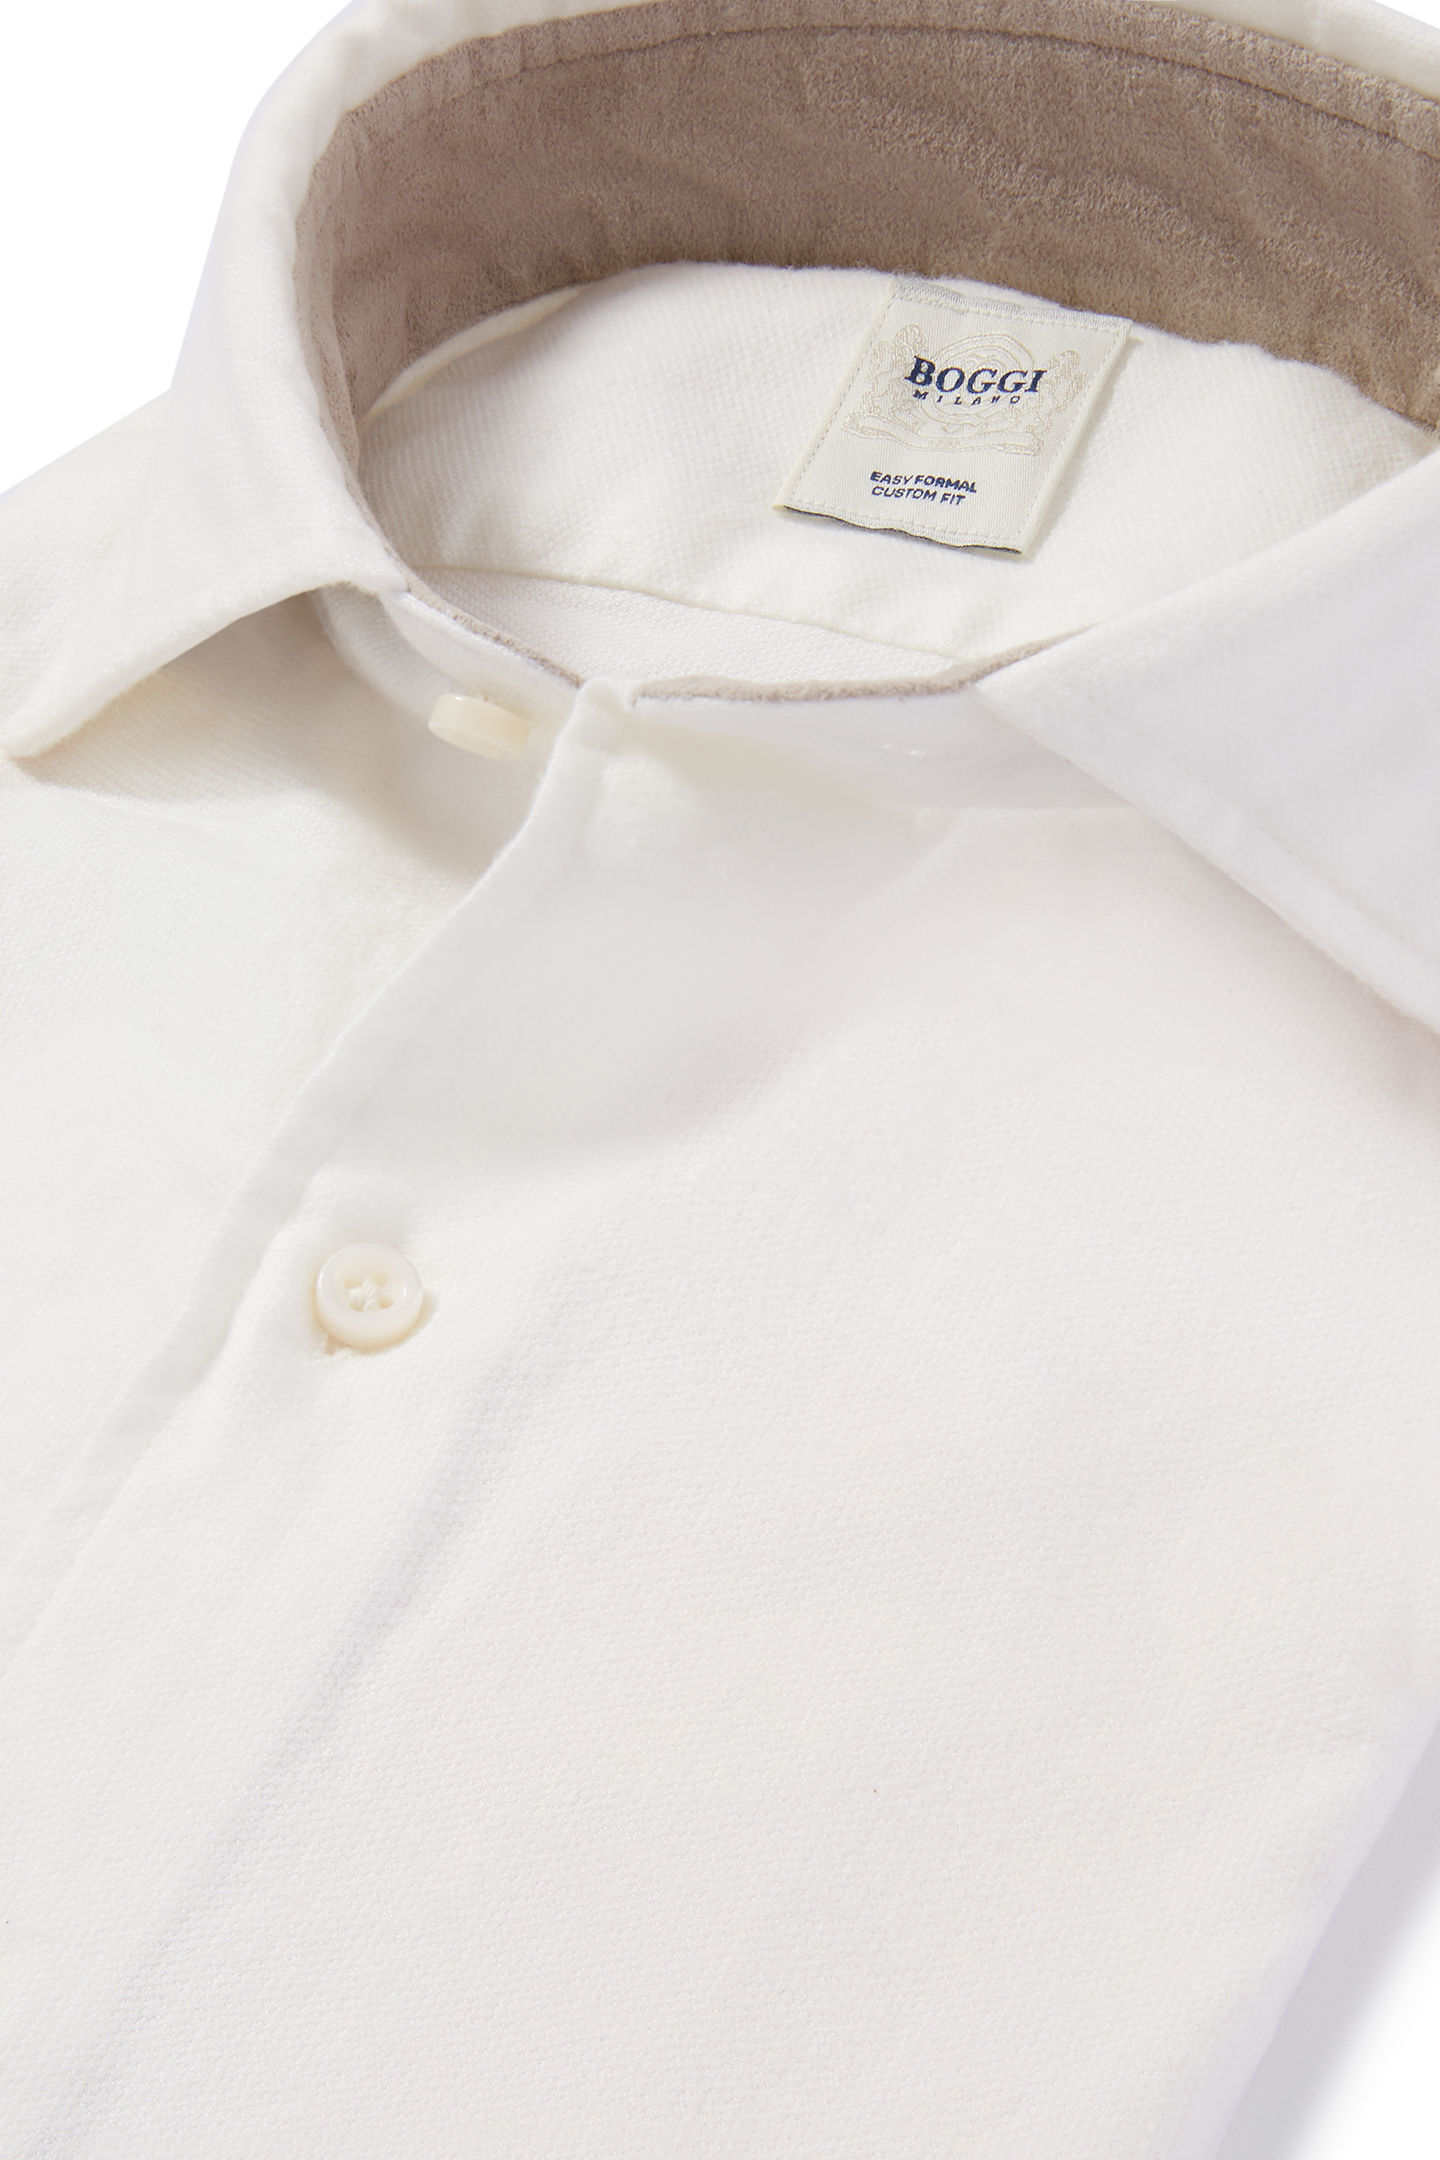 Kent Collar Shirt custom fit white shirt with kent collar, white, small ... KQHDAOC